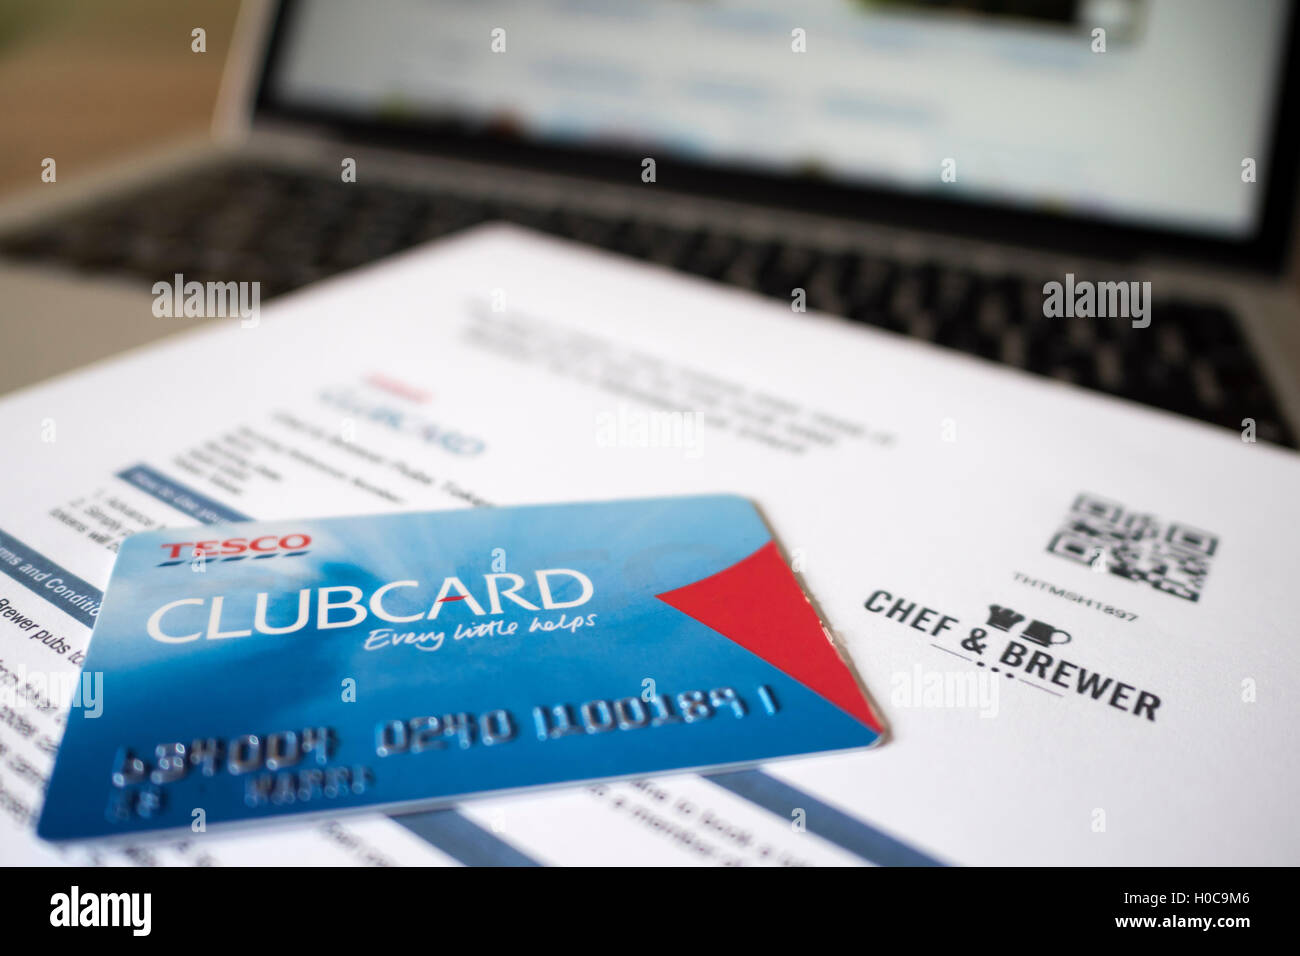 Tesco Clubcard Stock Photos & Tesco Clubcard Stock Images - Alamy